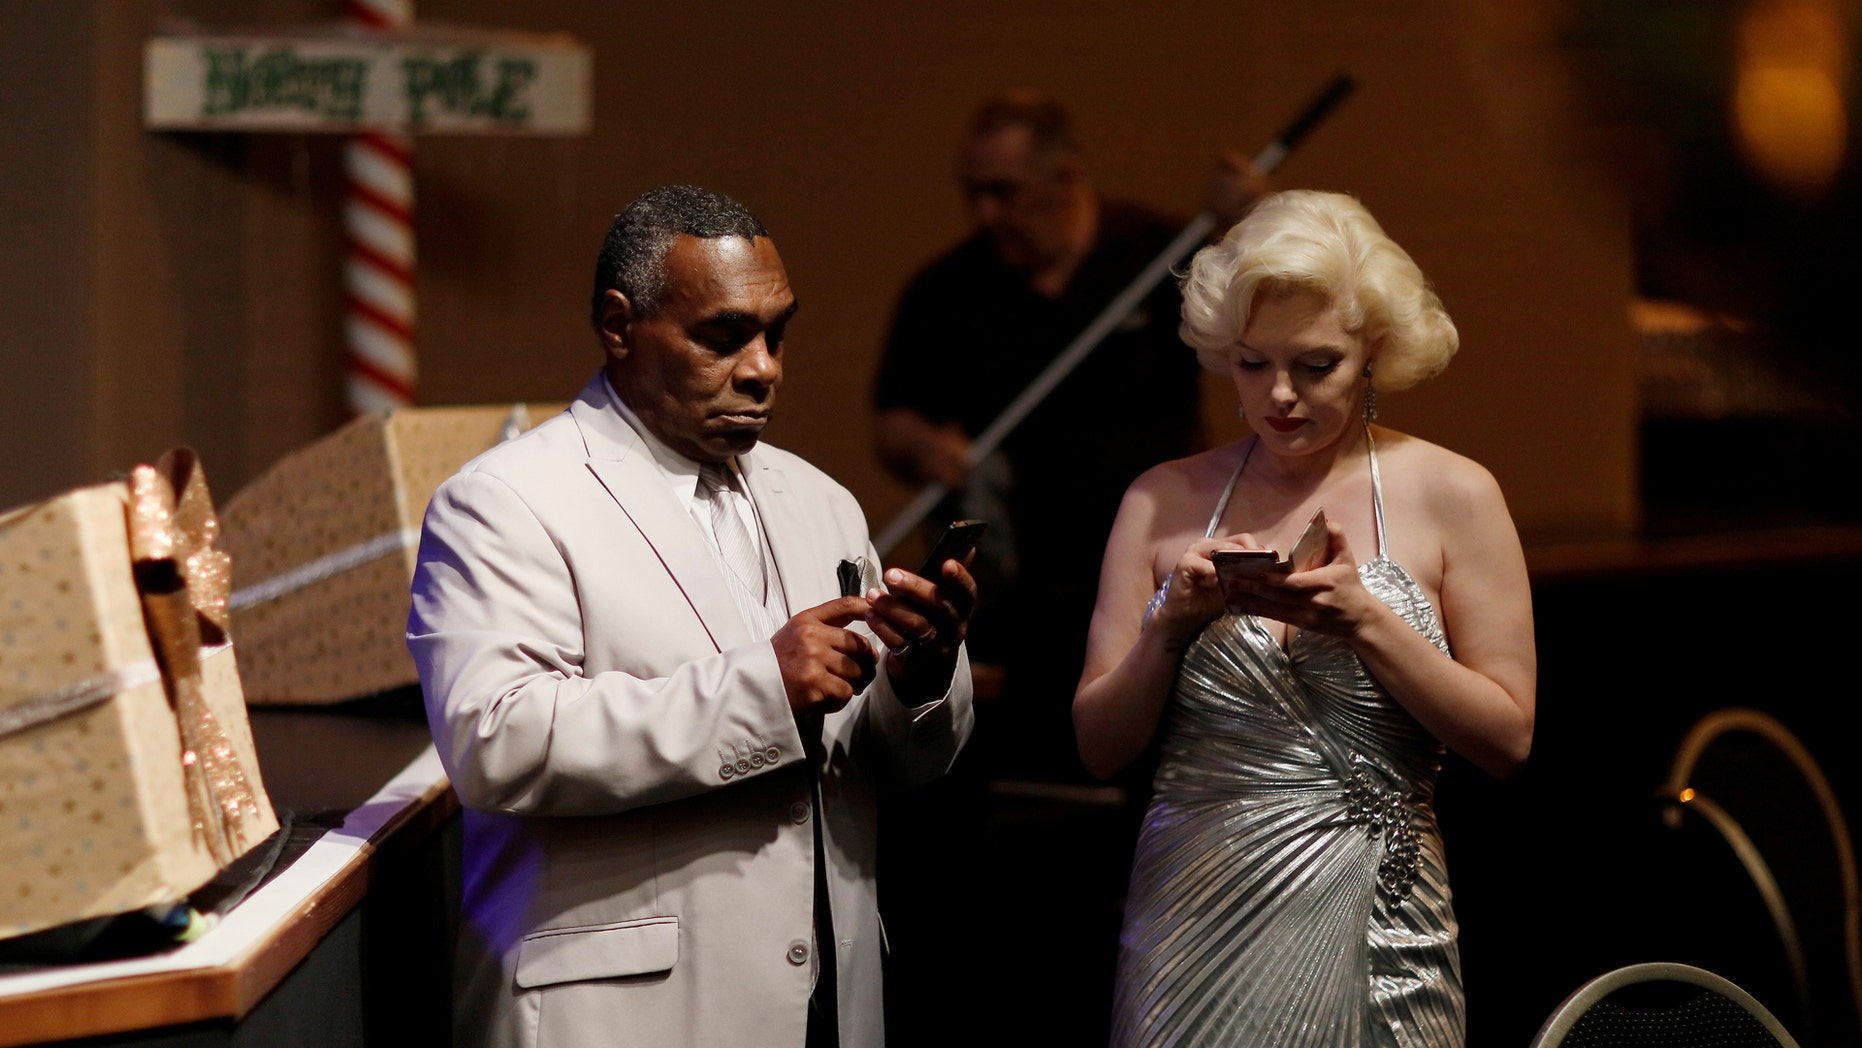 "File photo: Performers dressed as Marilyn Monroe and Louis Armstrong check their smartphones before a ""Stars in Concert"" show at the Estrel hotel in Berlin, Germany, December 7, 2016. (REUTERS/Hannibal Hanschke)"